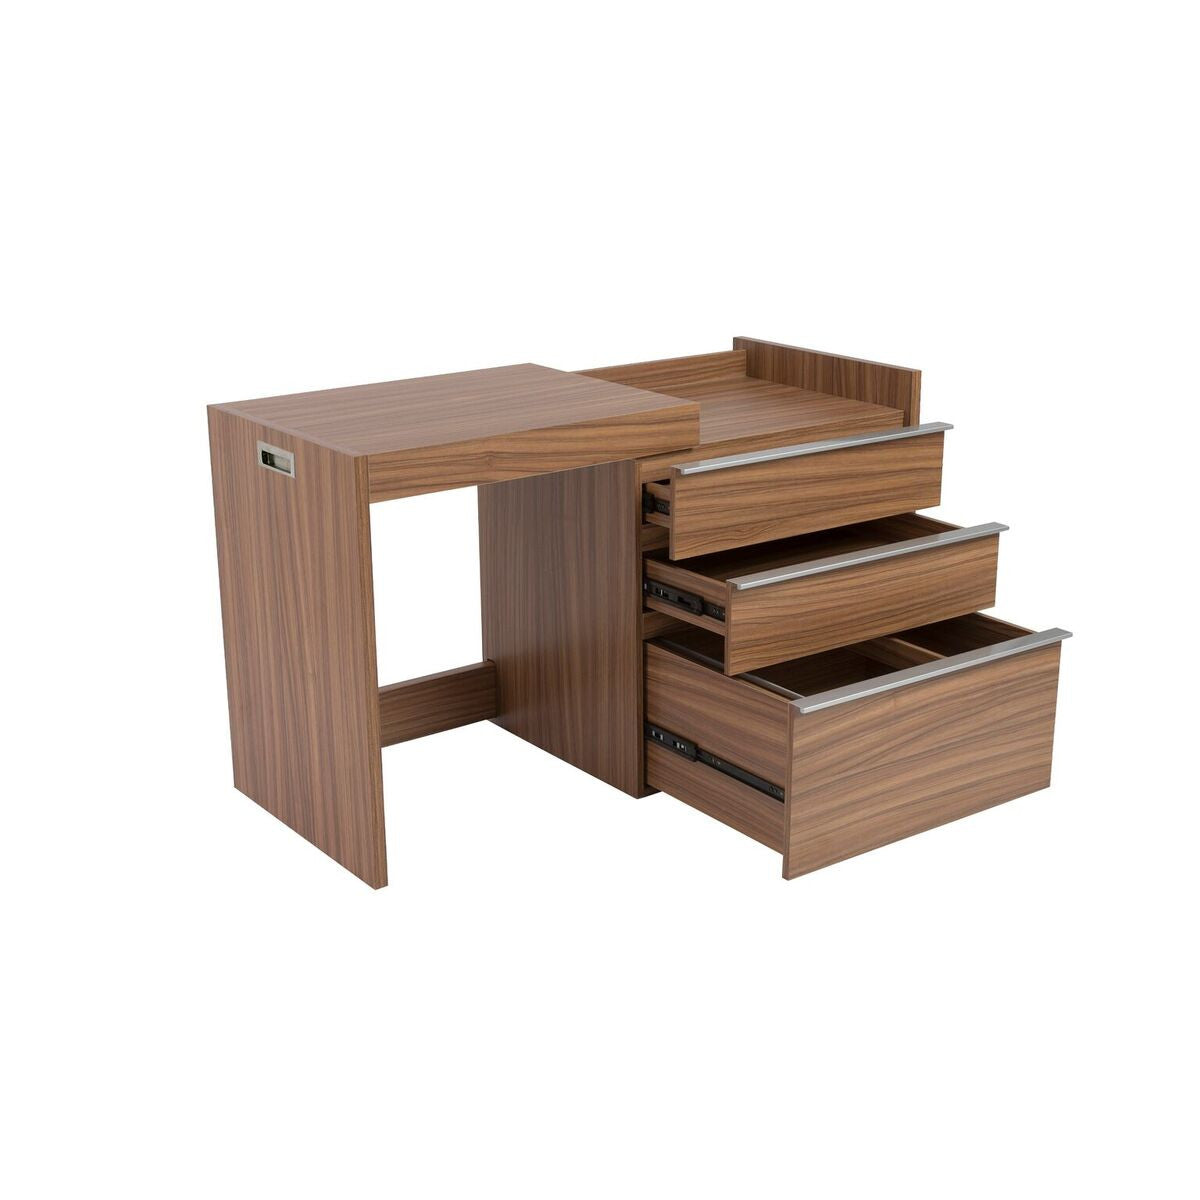 Walnut Convertible Desk / Storage Cabinet With Slide Out Top